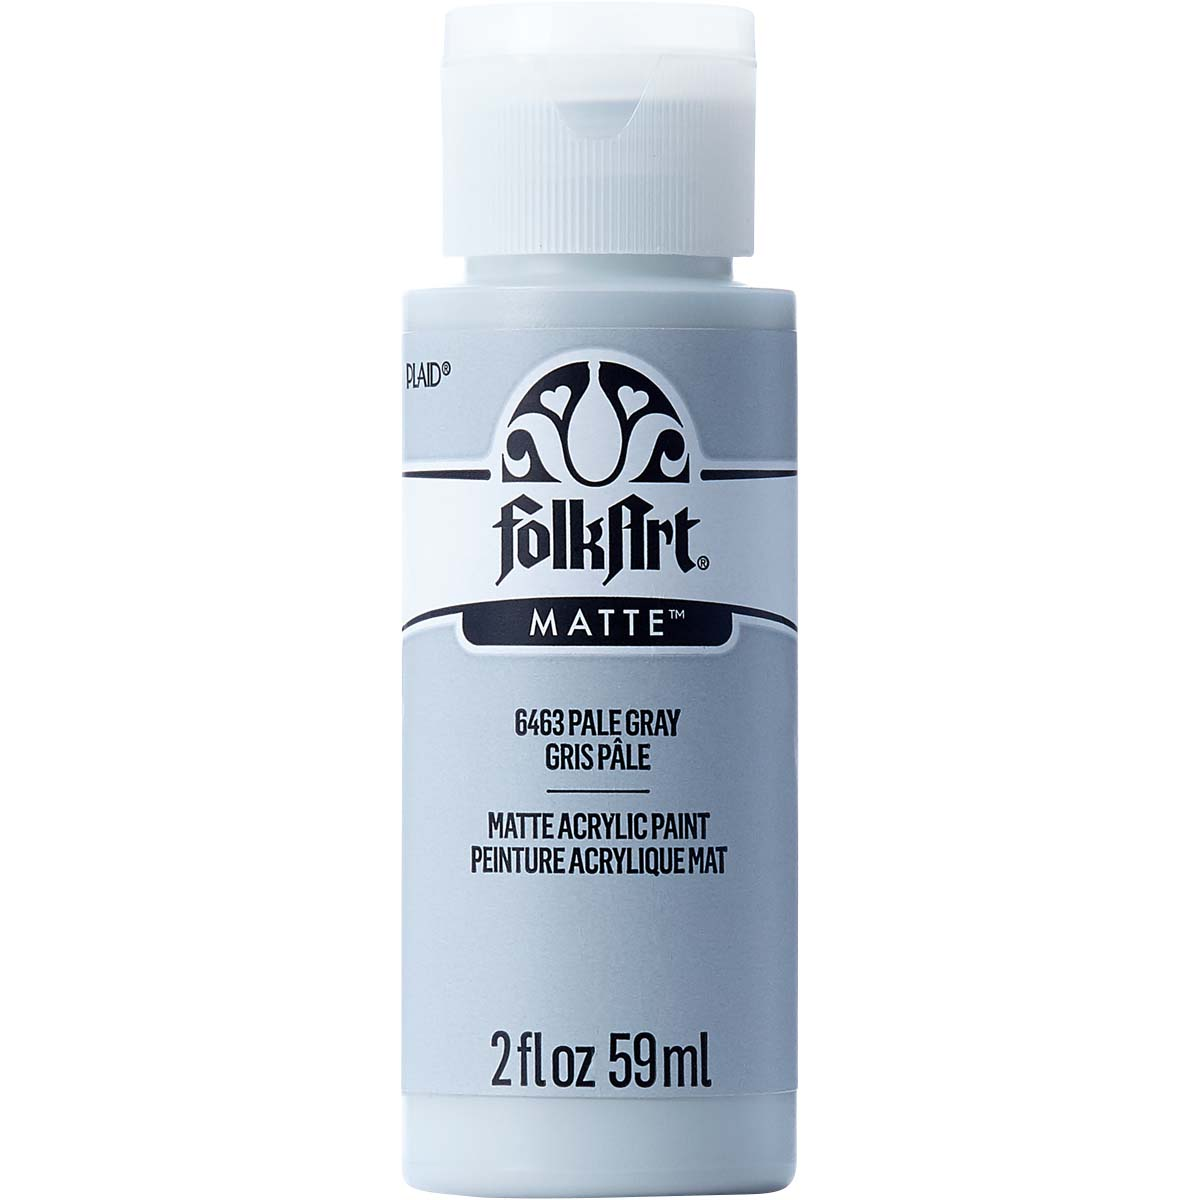 FolkArt ® Acrylic Colors - Pale Gray, 2 oz. - 6463